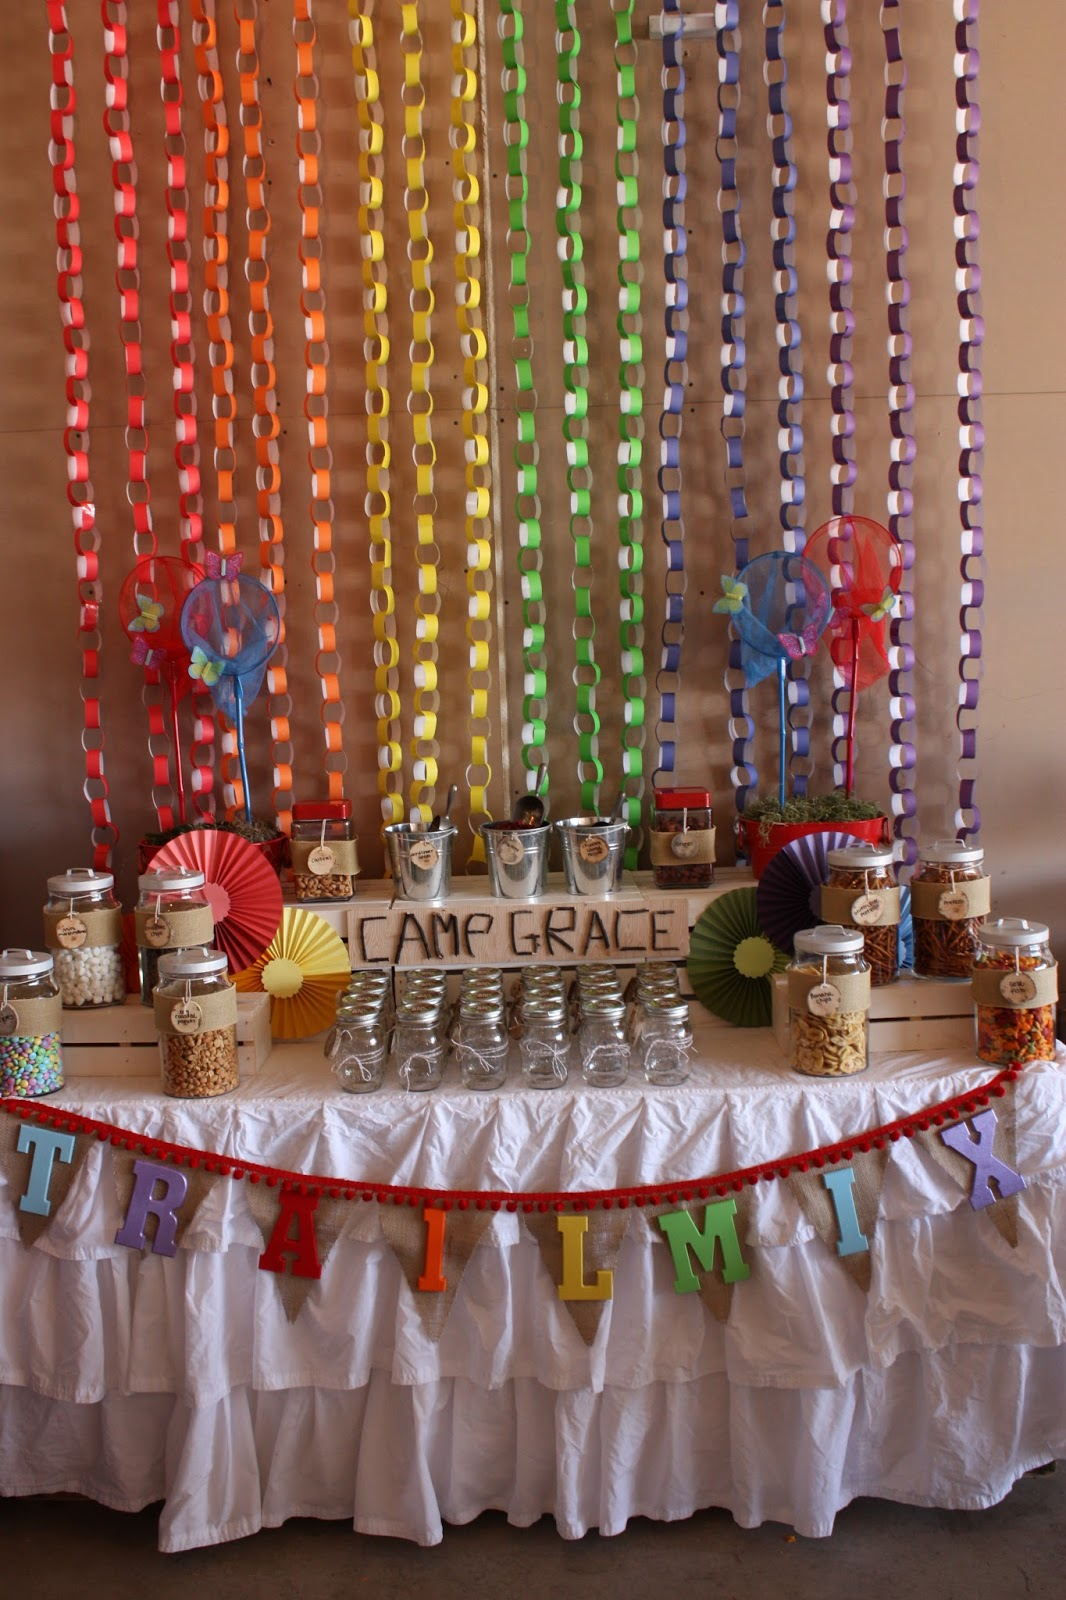 Buckets of grace real party camp arts and crafts for Arts and crafts party